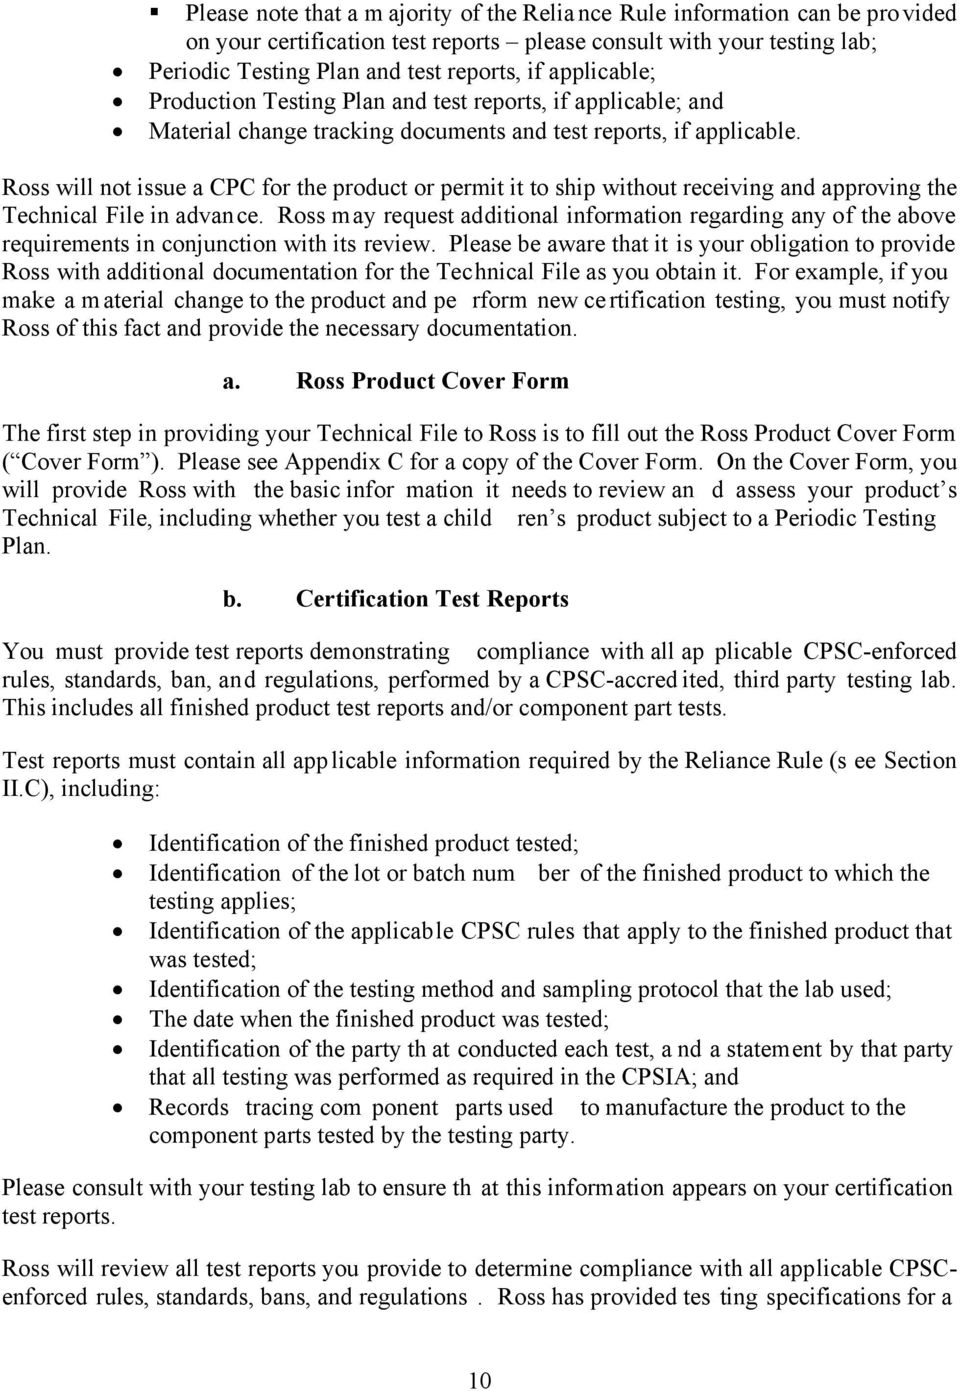 Ross will not issue a CPC for the product or permit it to ship without receiving and approving the Technical File in advance.